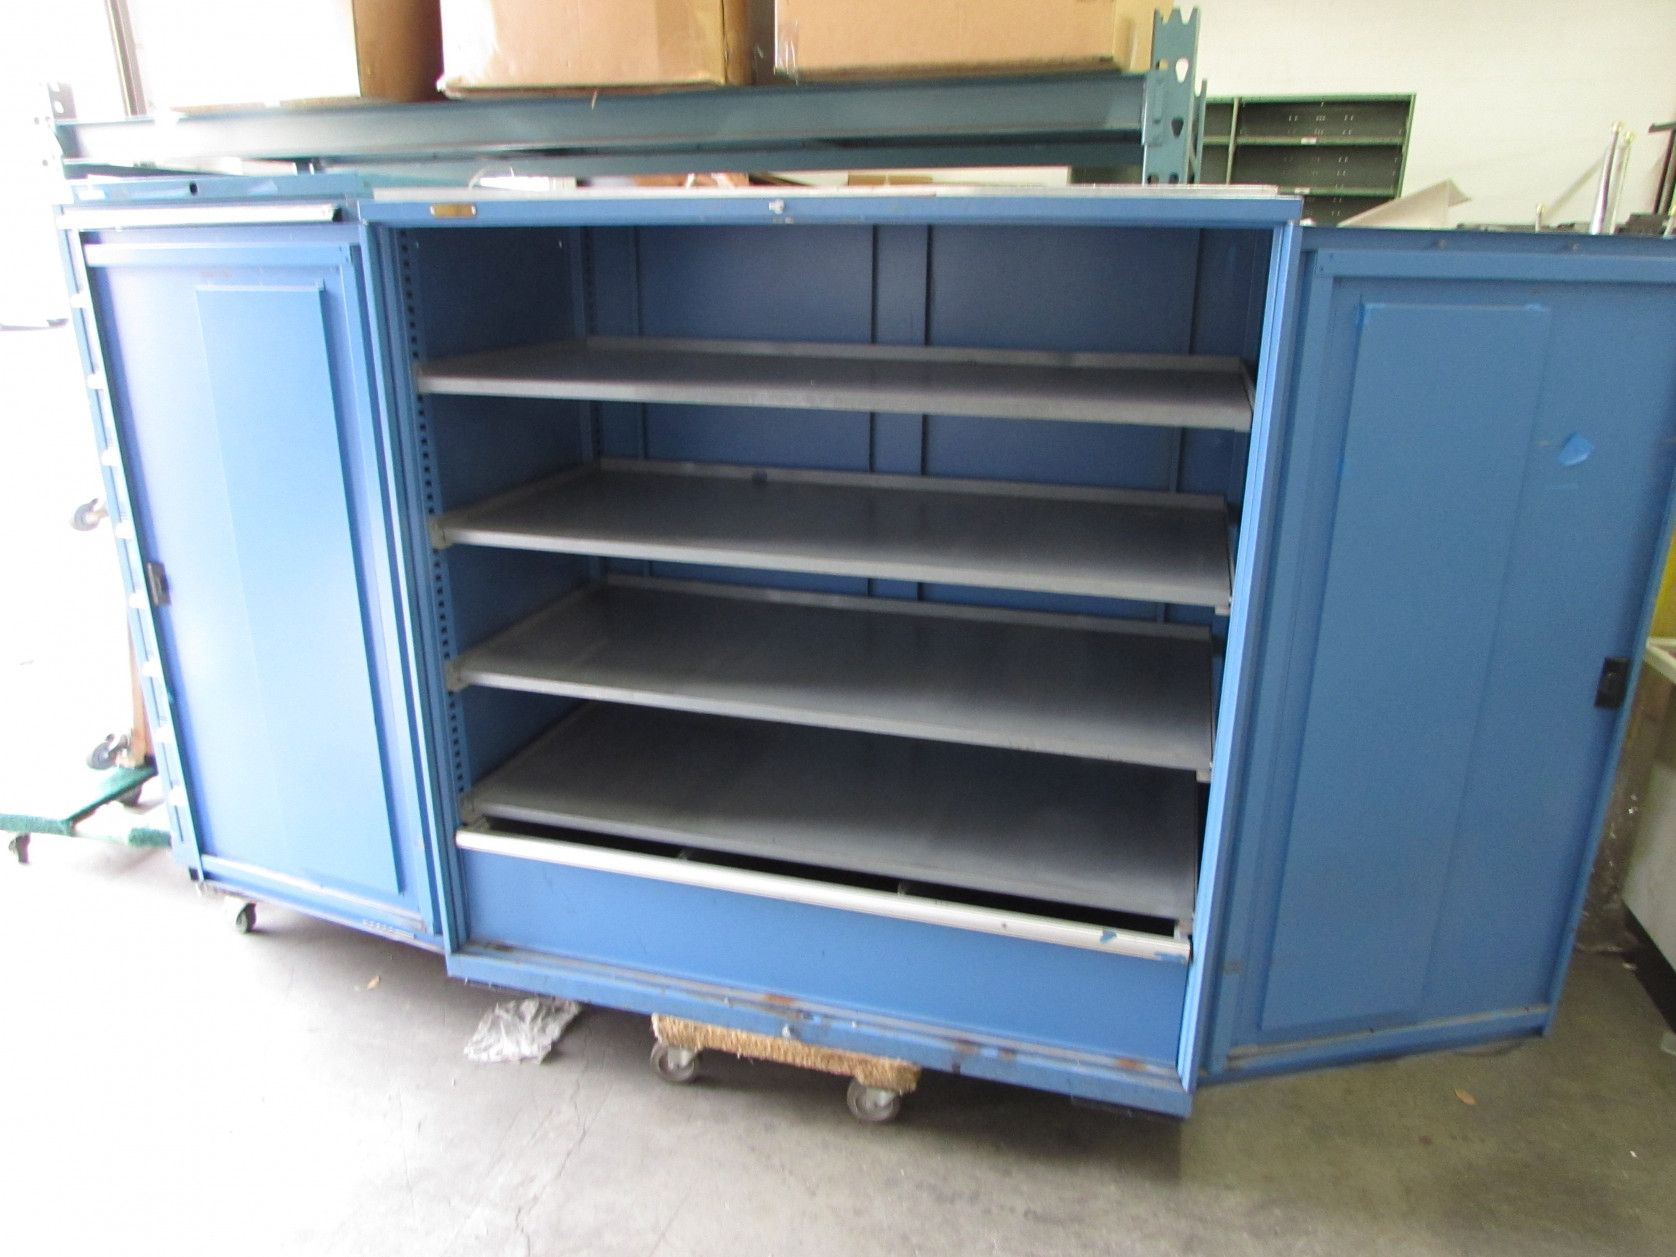 70 Vidmar Cabinets For Sale Craigslist Corner Kitchen Cupboard Ideas Check More At Http Www Planetgreenspot C Cabinets For Sale Kitchen Cupboards Cupboard